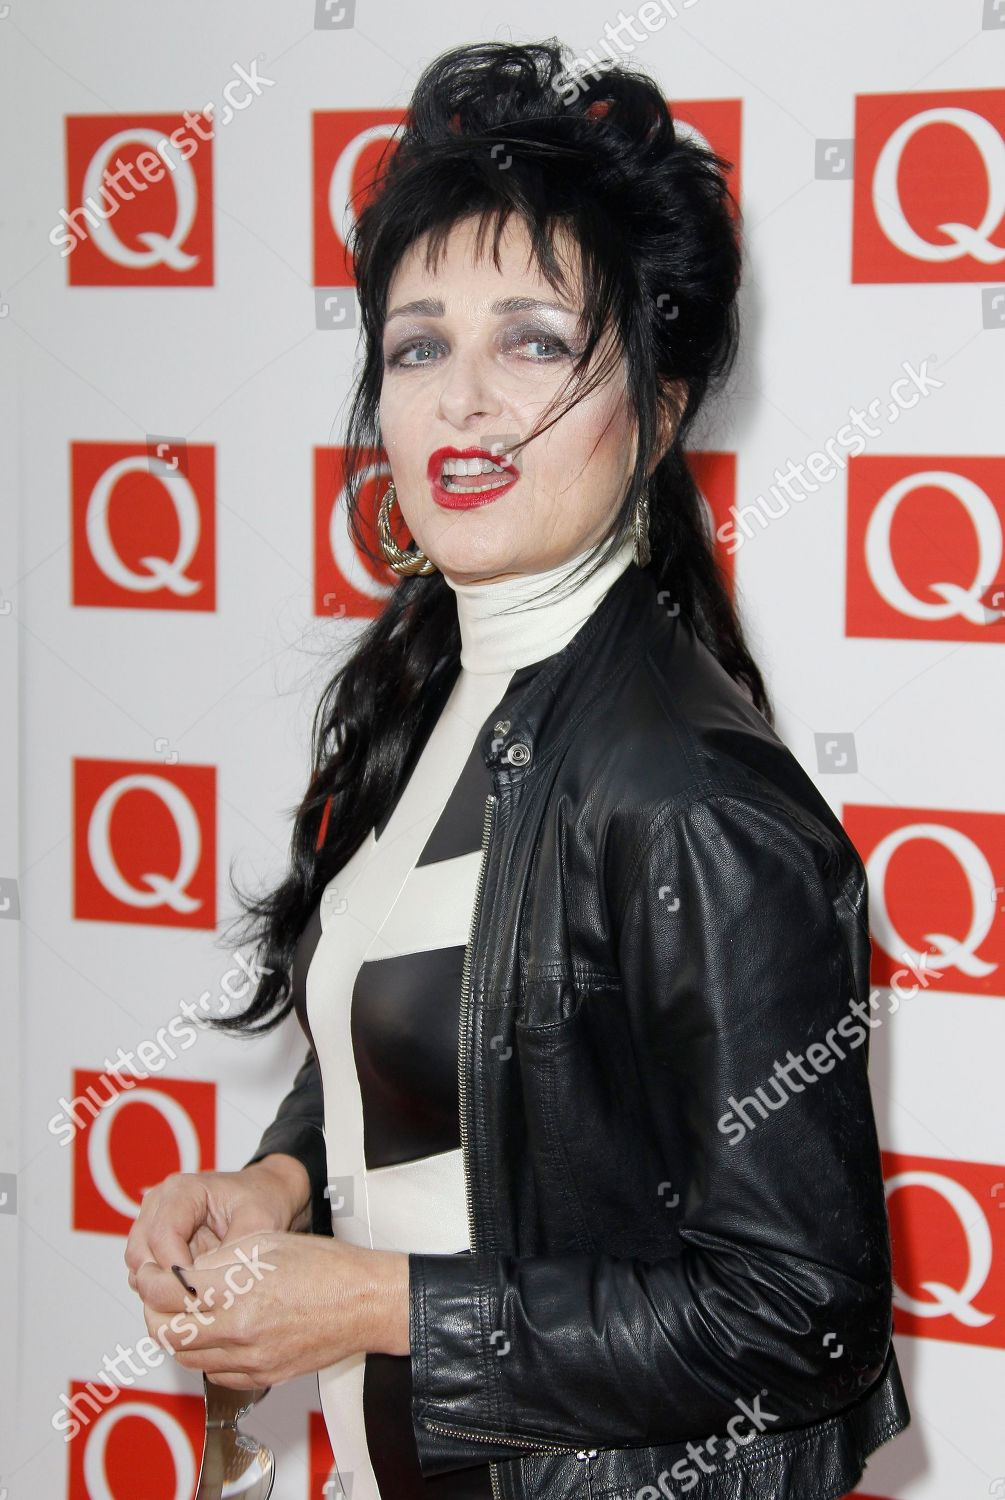 Discussion on this topic: Monica Young, siouxsie-q/